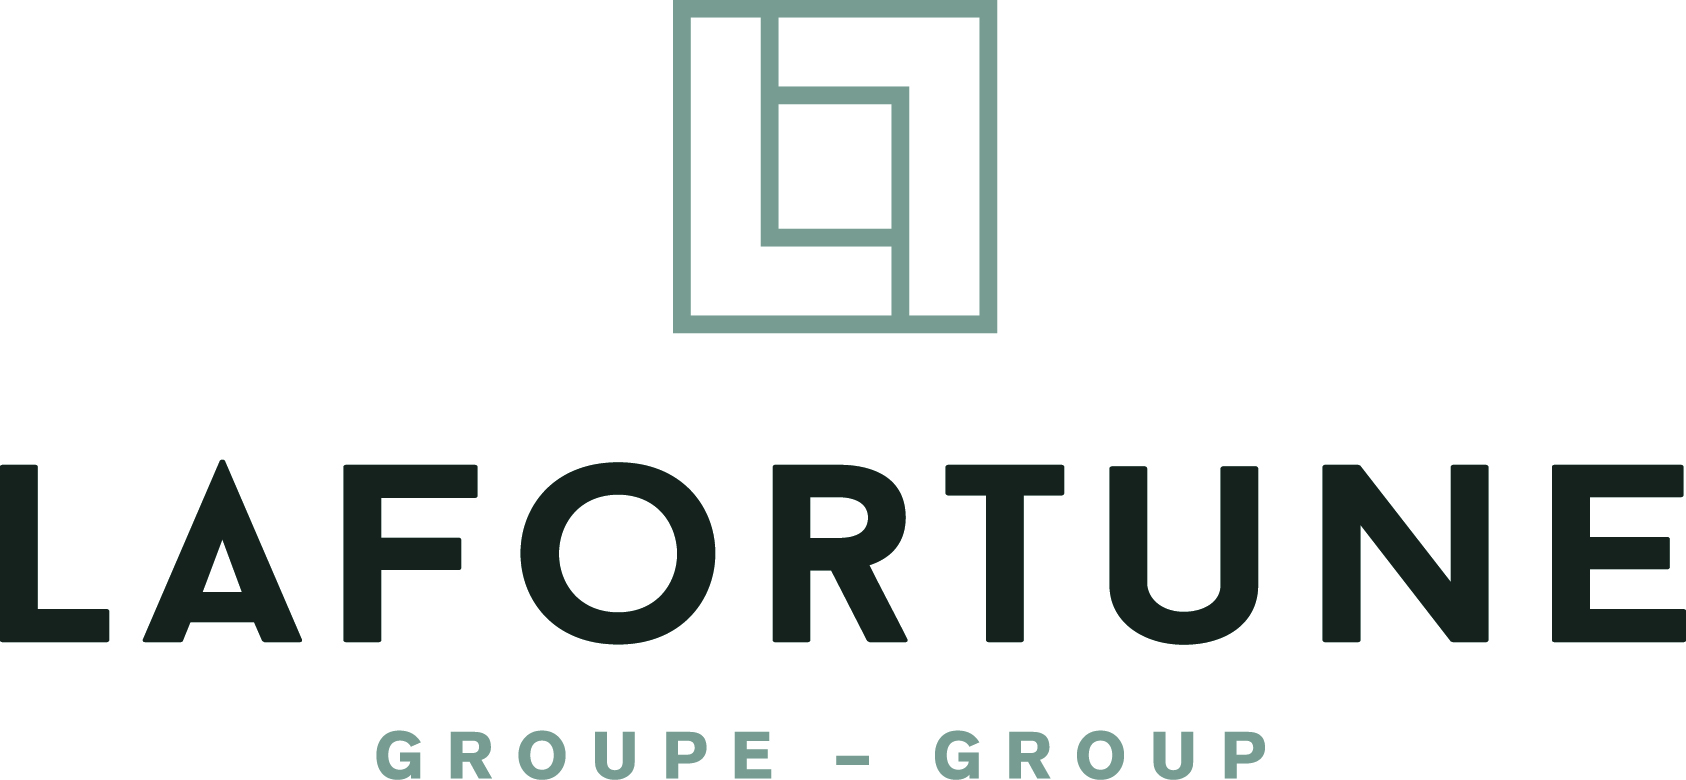 Lafortune Group CMYK